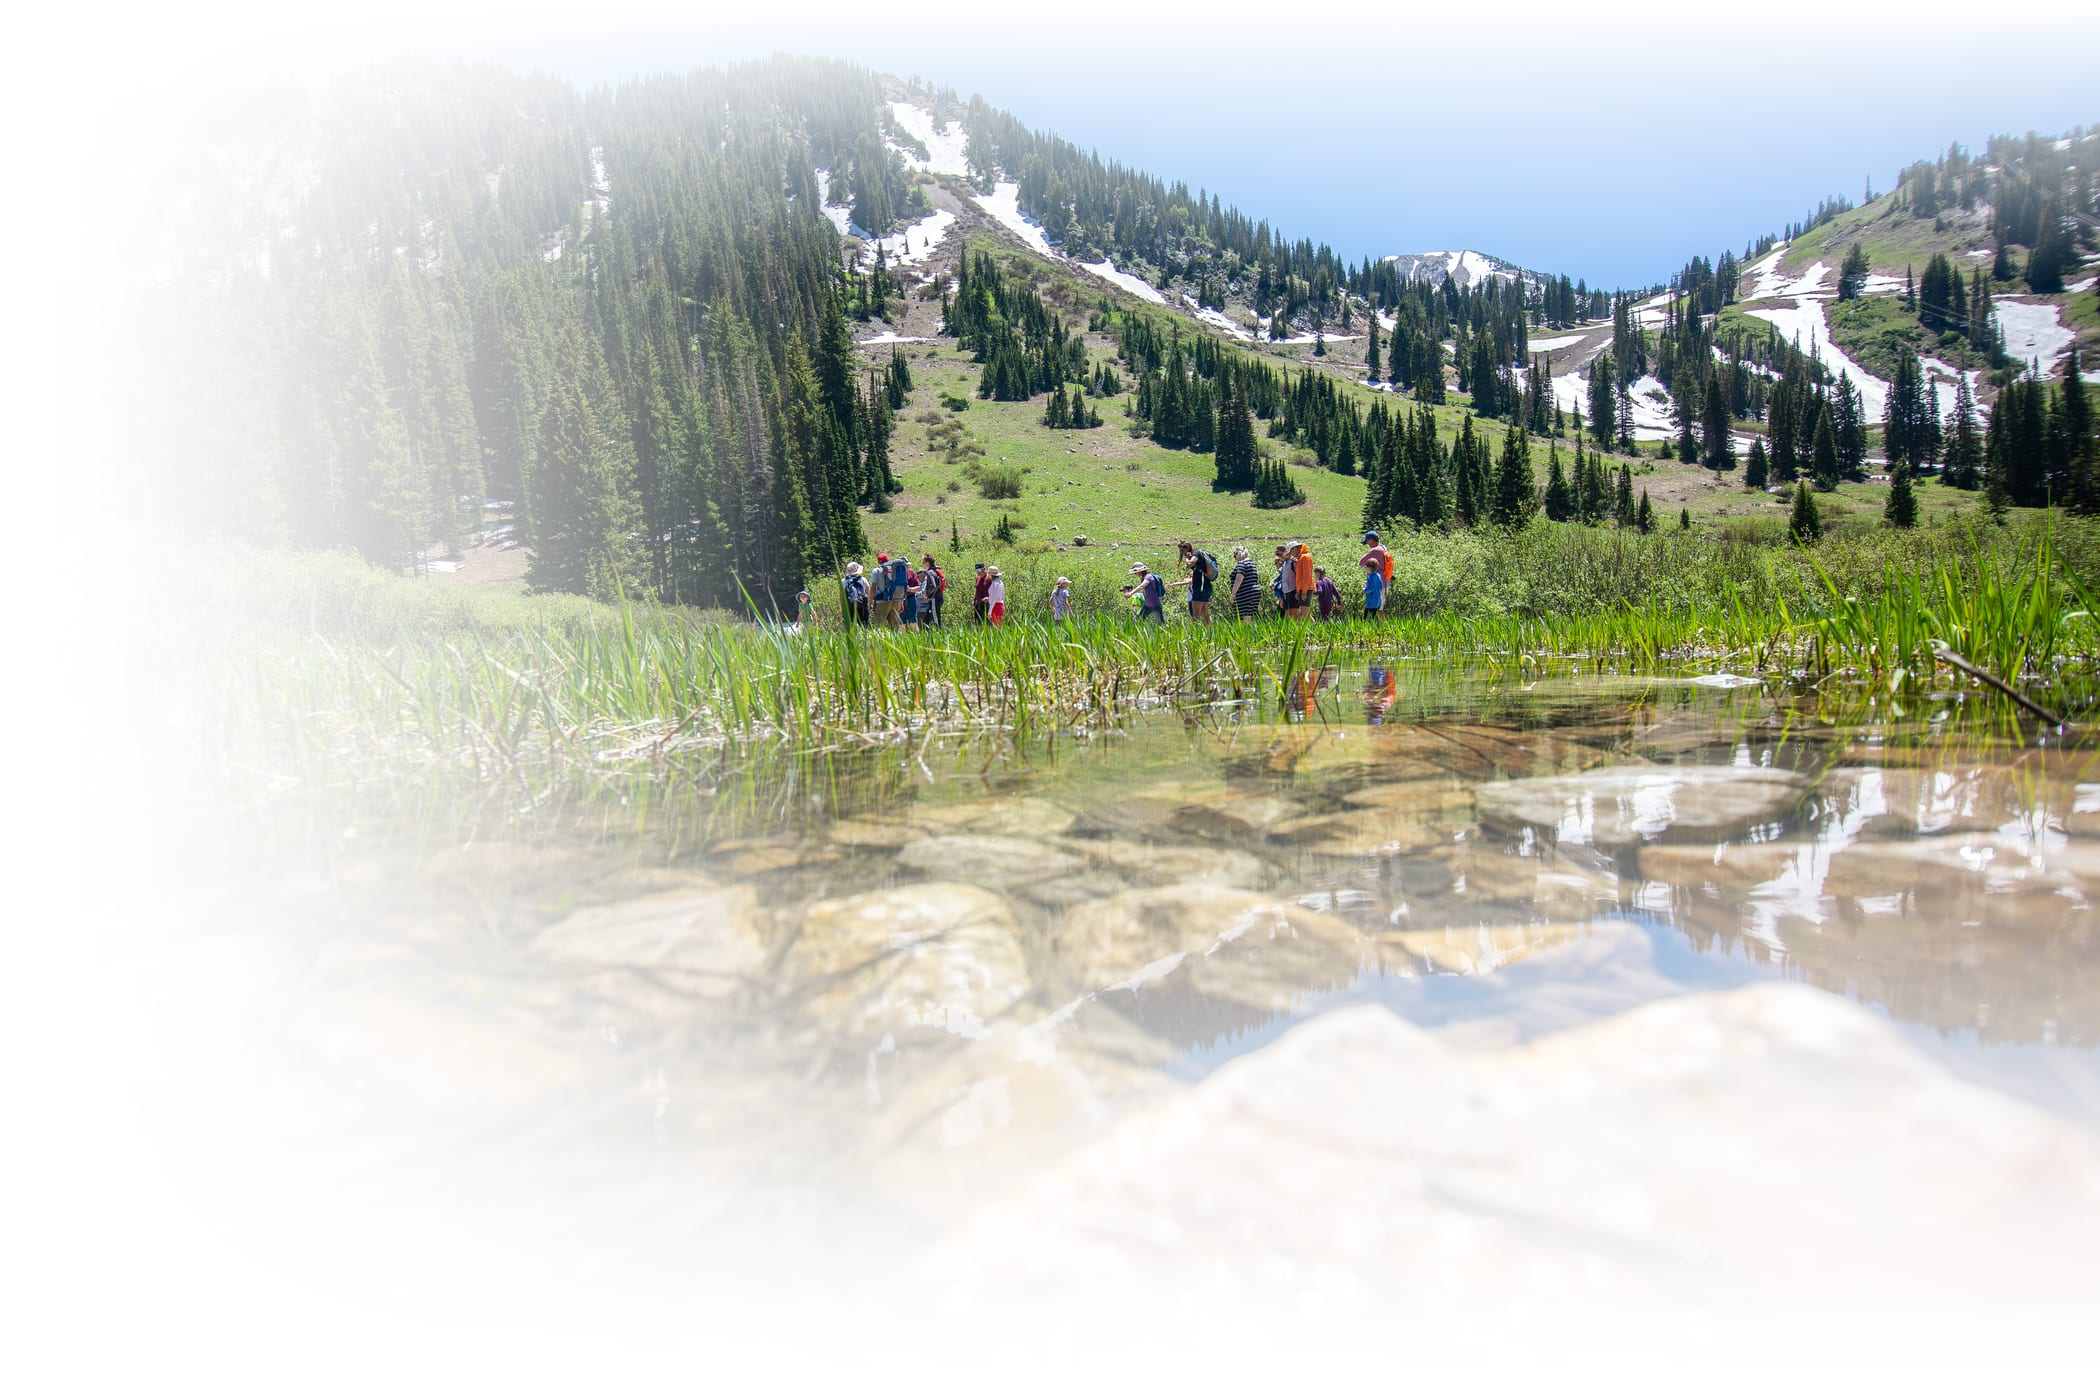 Volunteers work to clean up Alta Ski Area on a sunny summer day